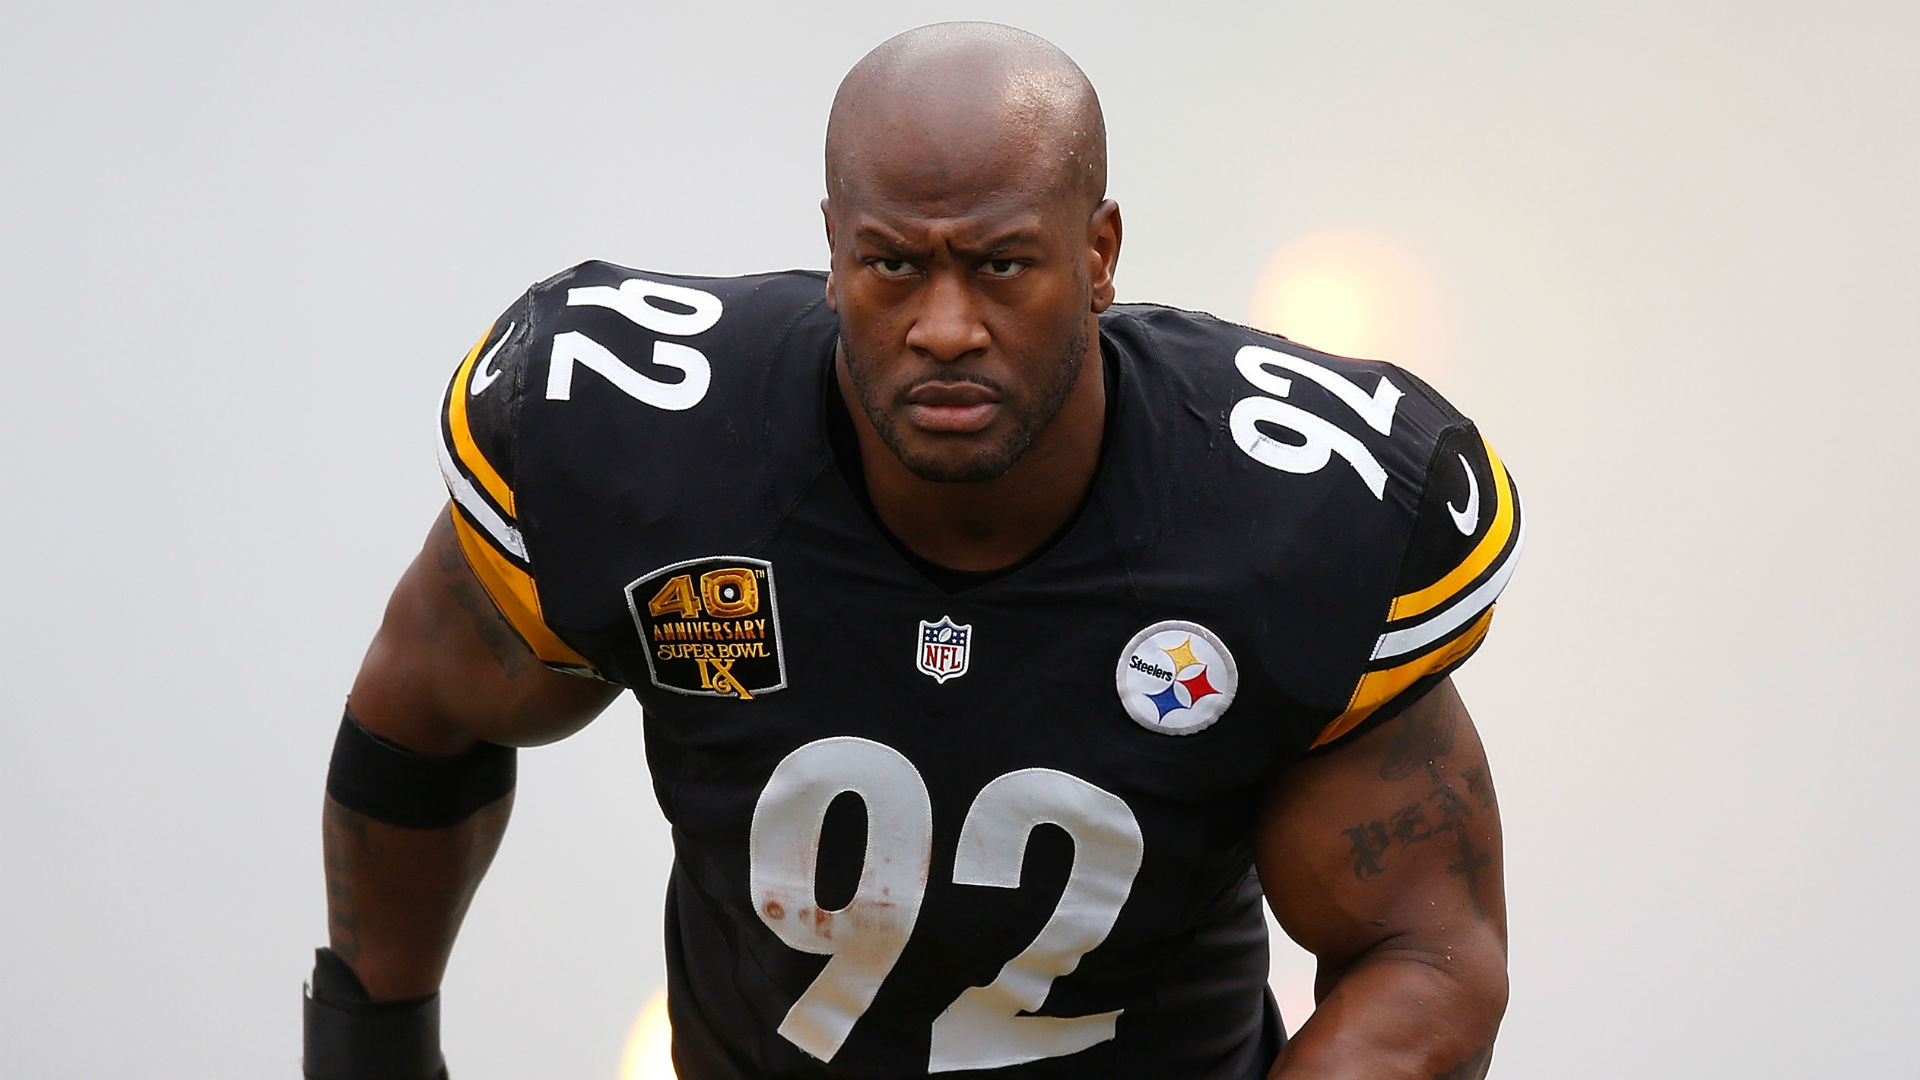 Steelers' Harrison cleared of any wrongdoing by NFL | Pittsburgh ...